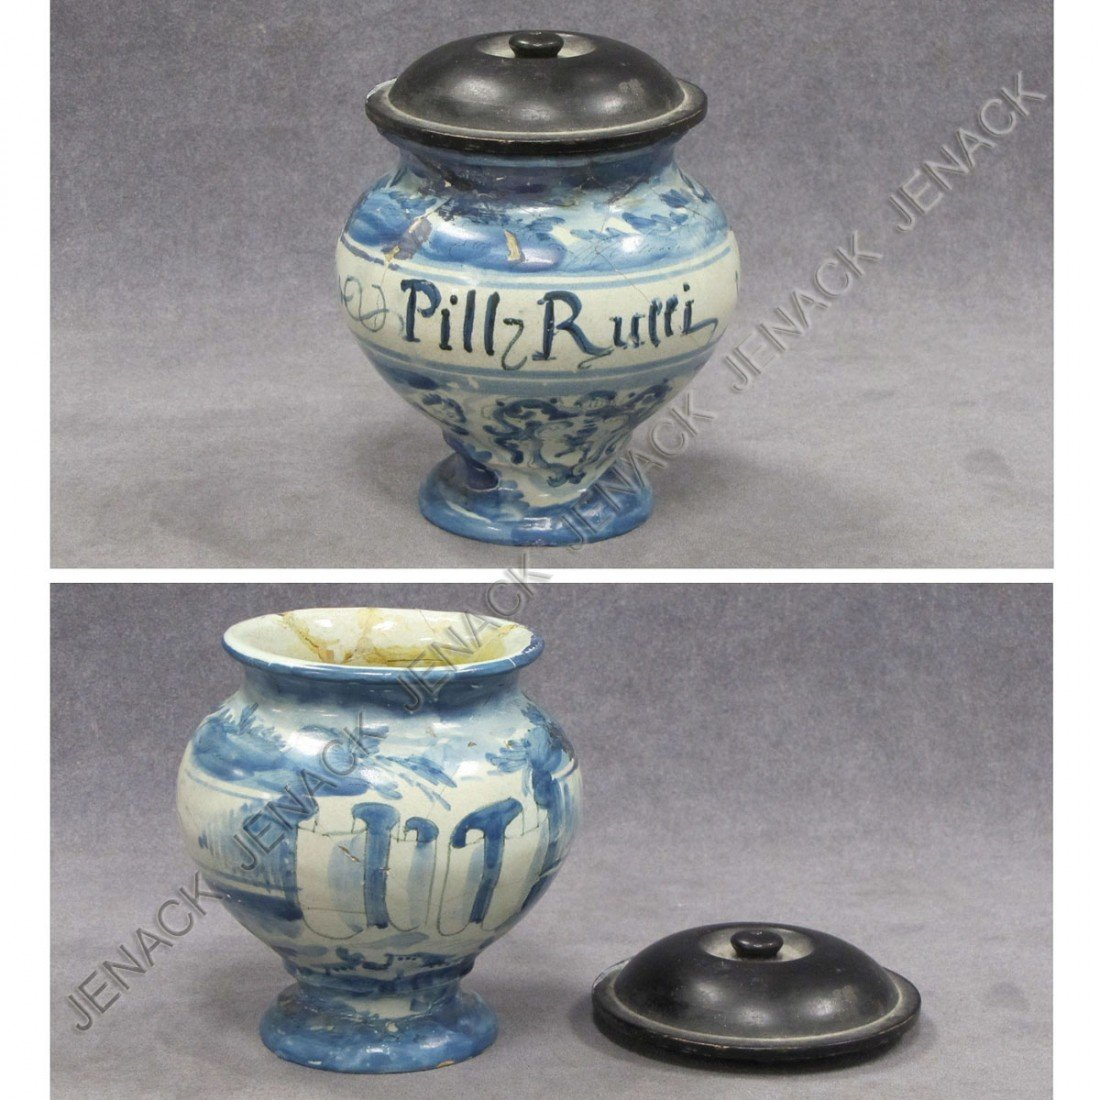 4: ITALIAN FAIENCE DRUG JAR, 18TH CENTURY